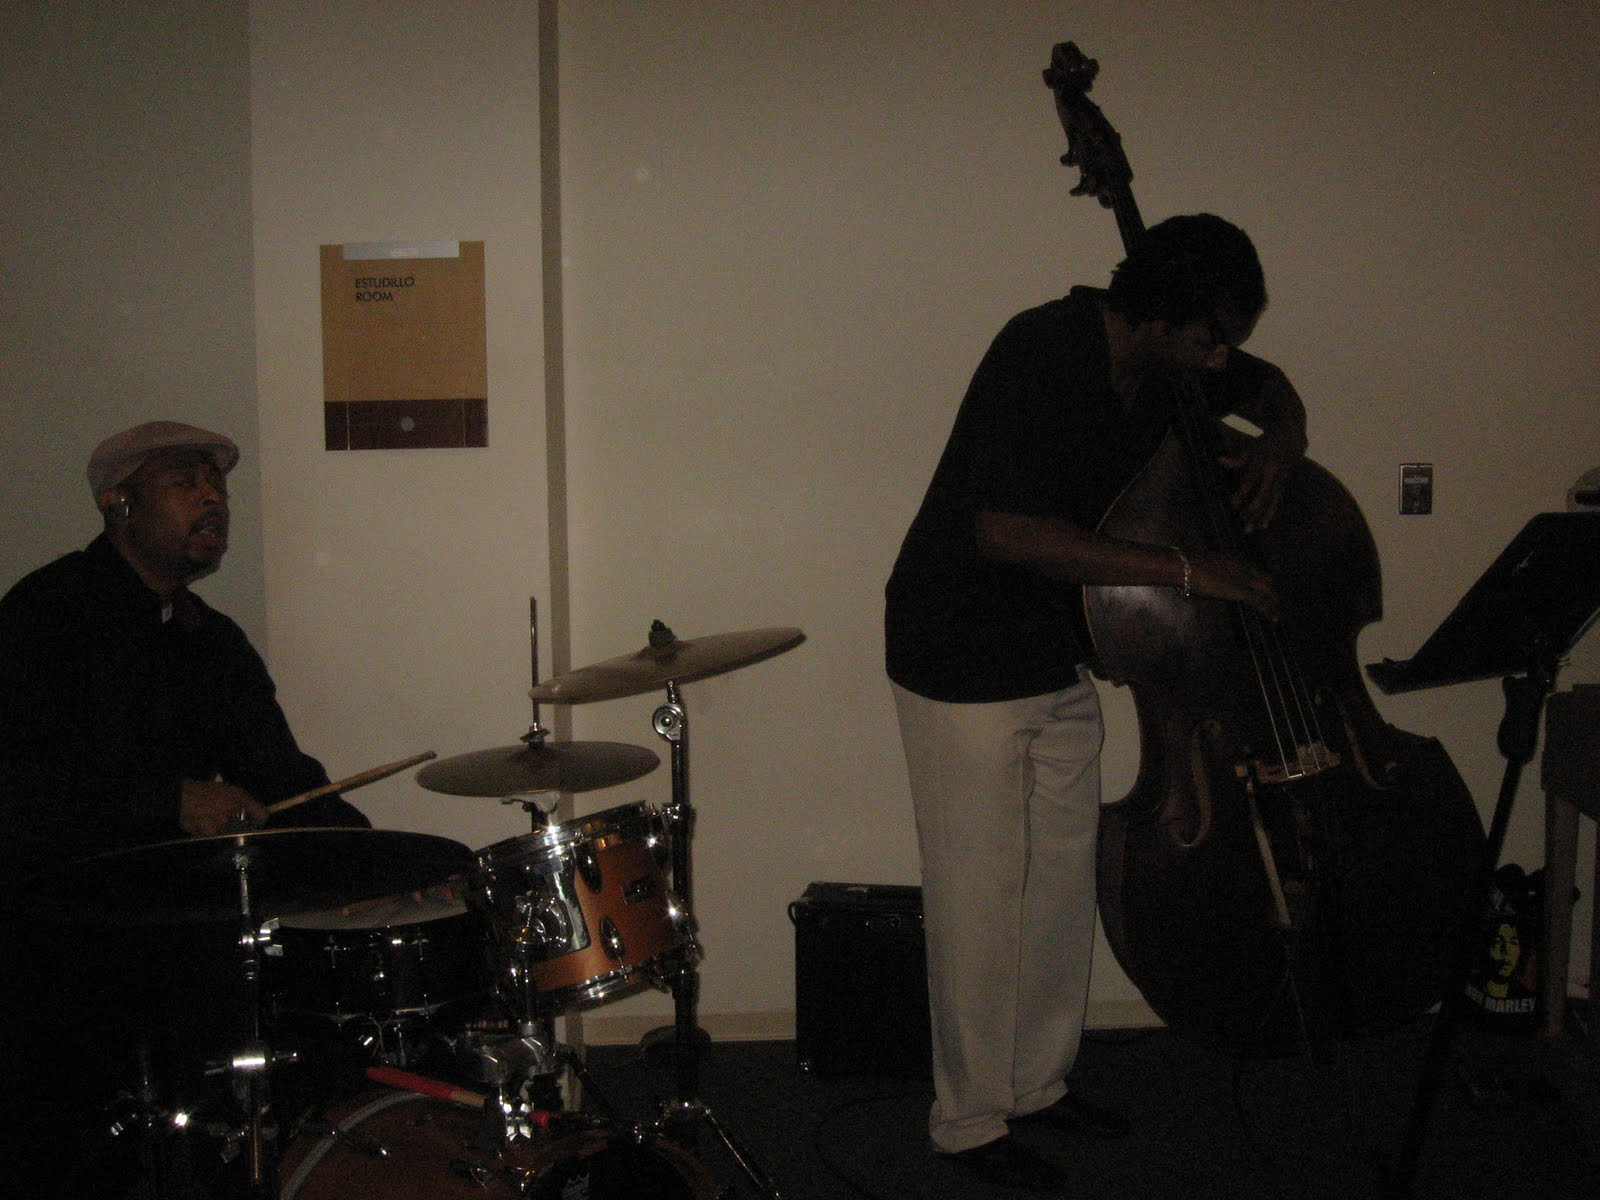 blues and jazz essay The influence of the blues on jazz the blues and jazz have much in common, from their origins in the african-american communities of the southern united states at the.